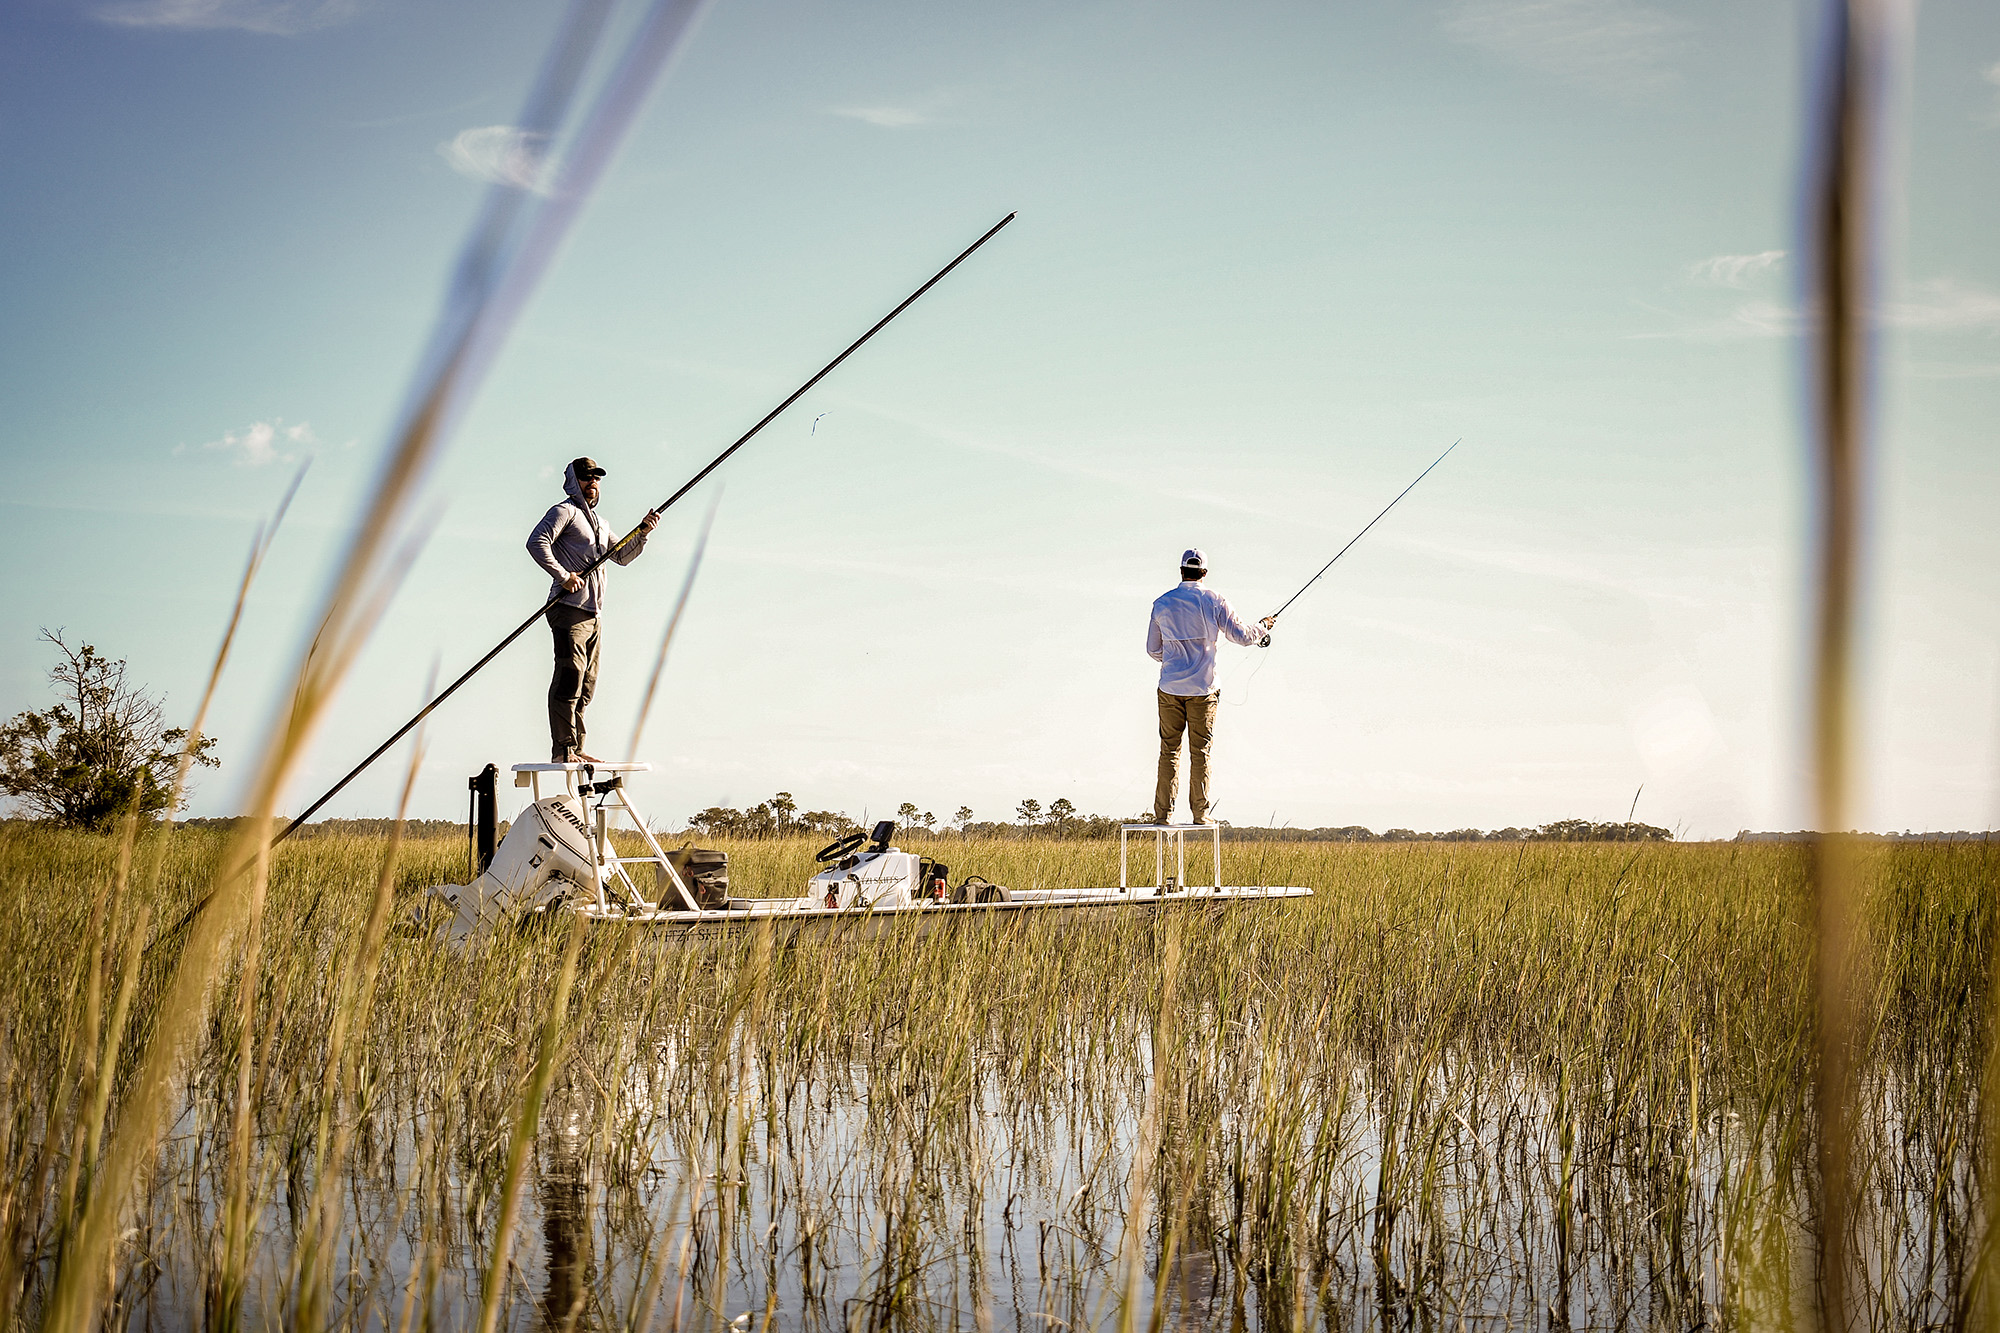 Two anglers fishing in shallow grass flats. One is poling the boat from behind while the other casts from a platform at the front